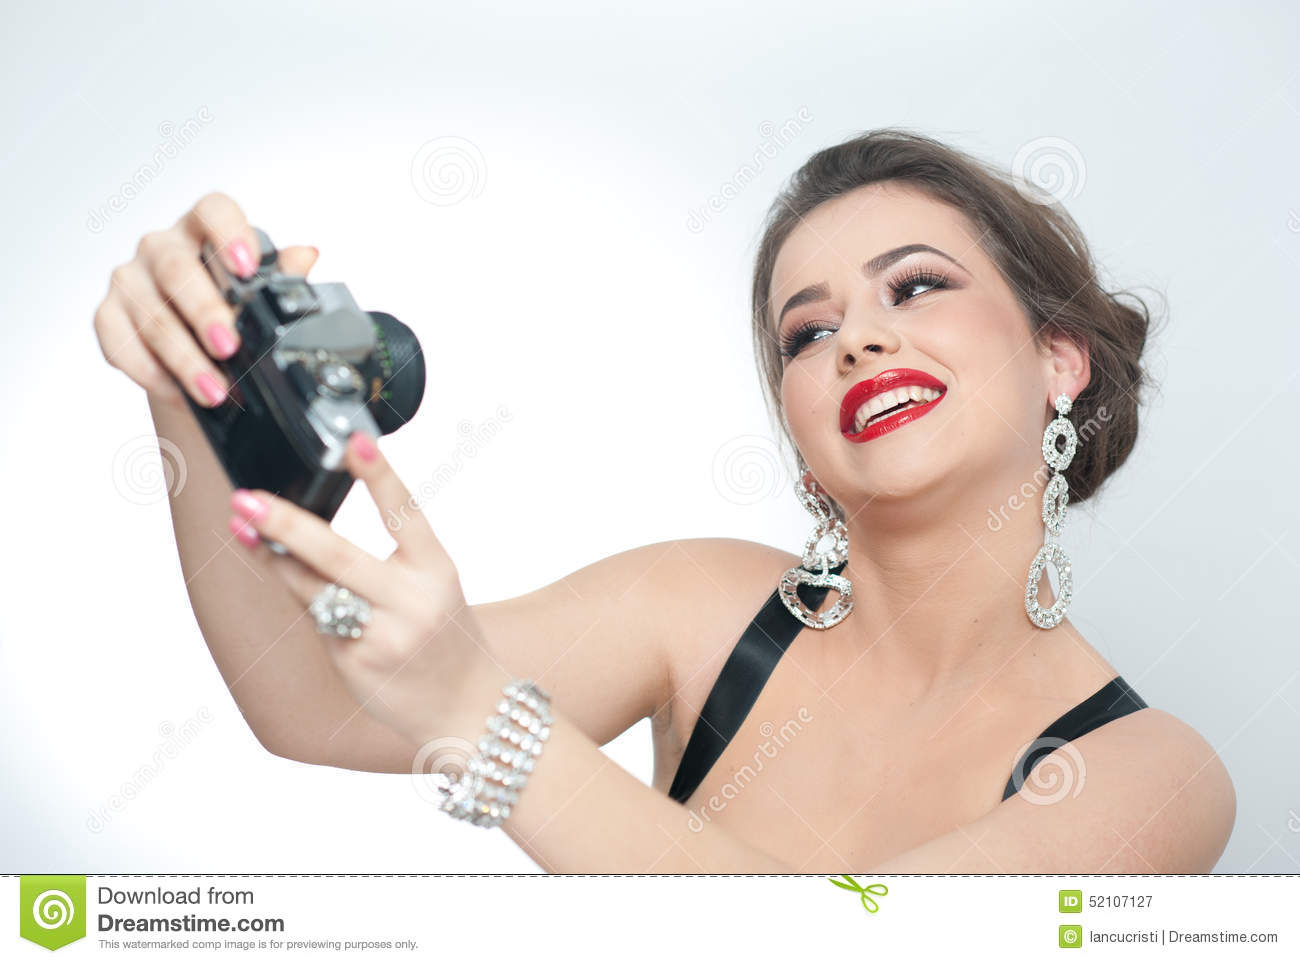 Best camera for taking photos of makeup